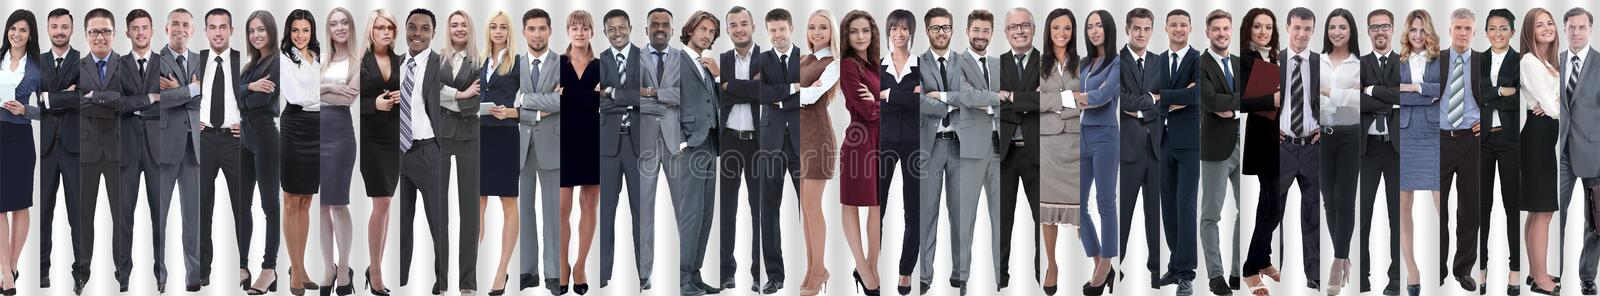 Panoramic collage of a large and successful business team royalty free stock photos